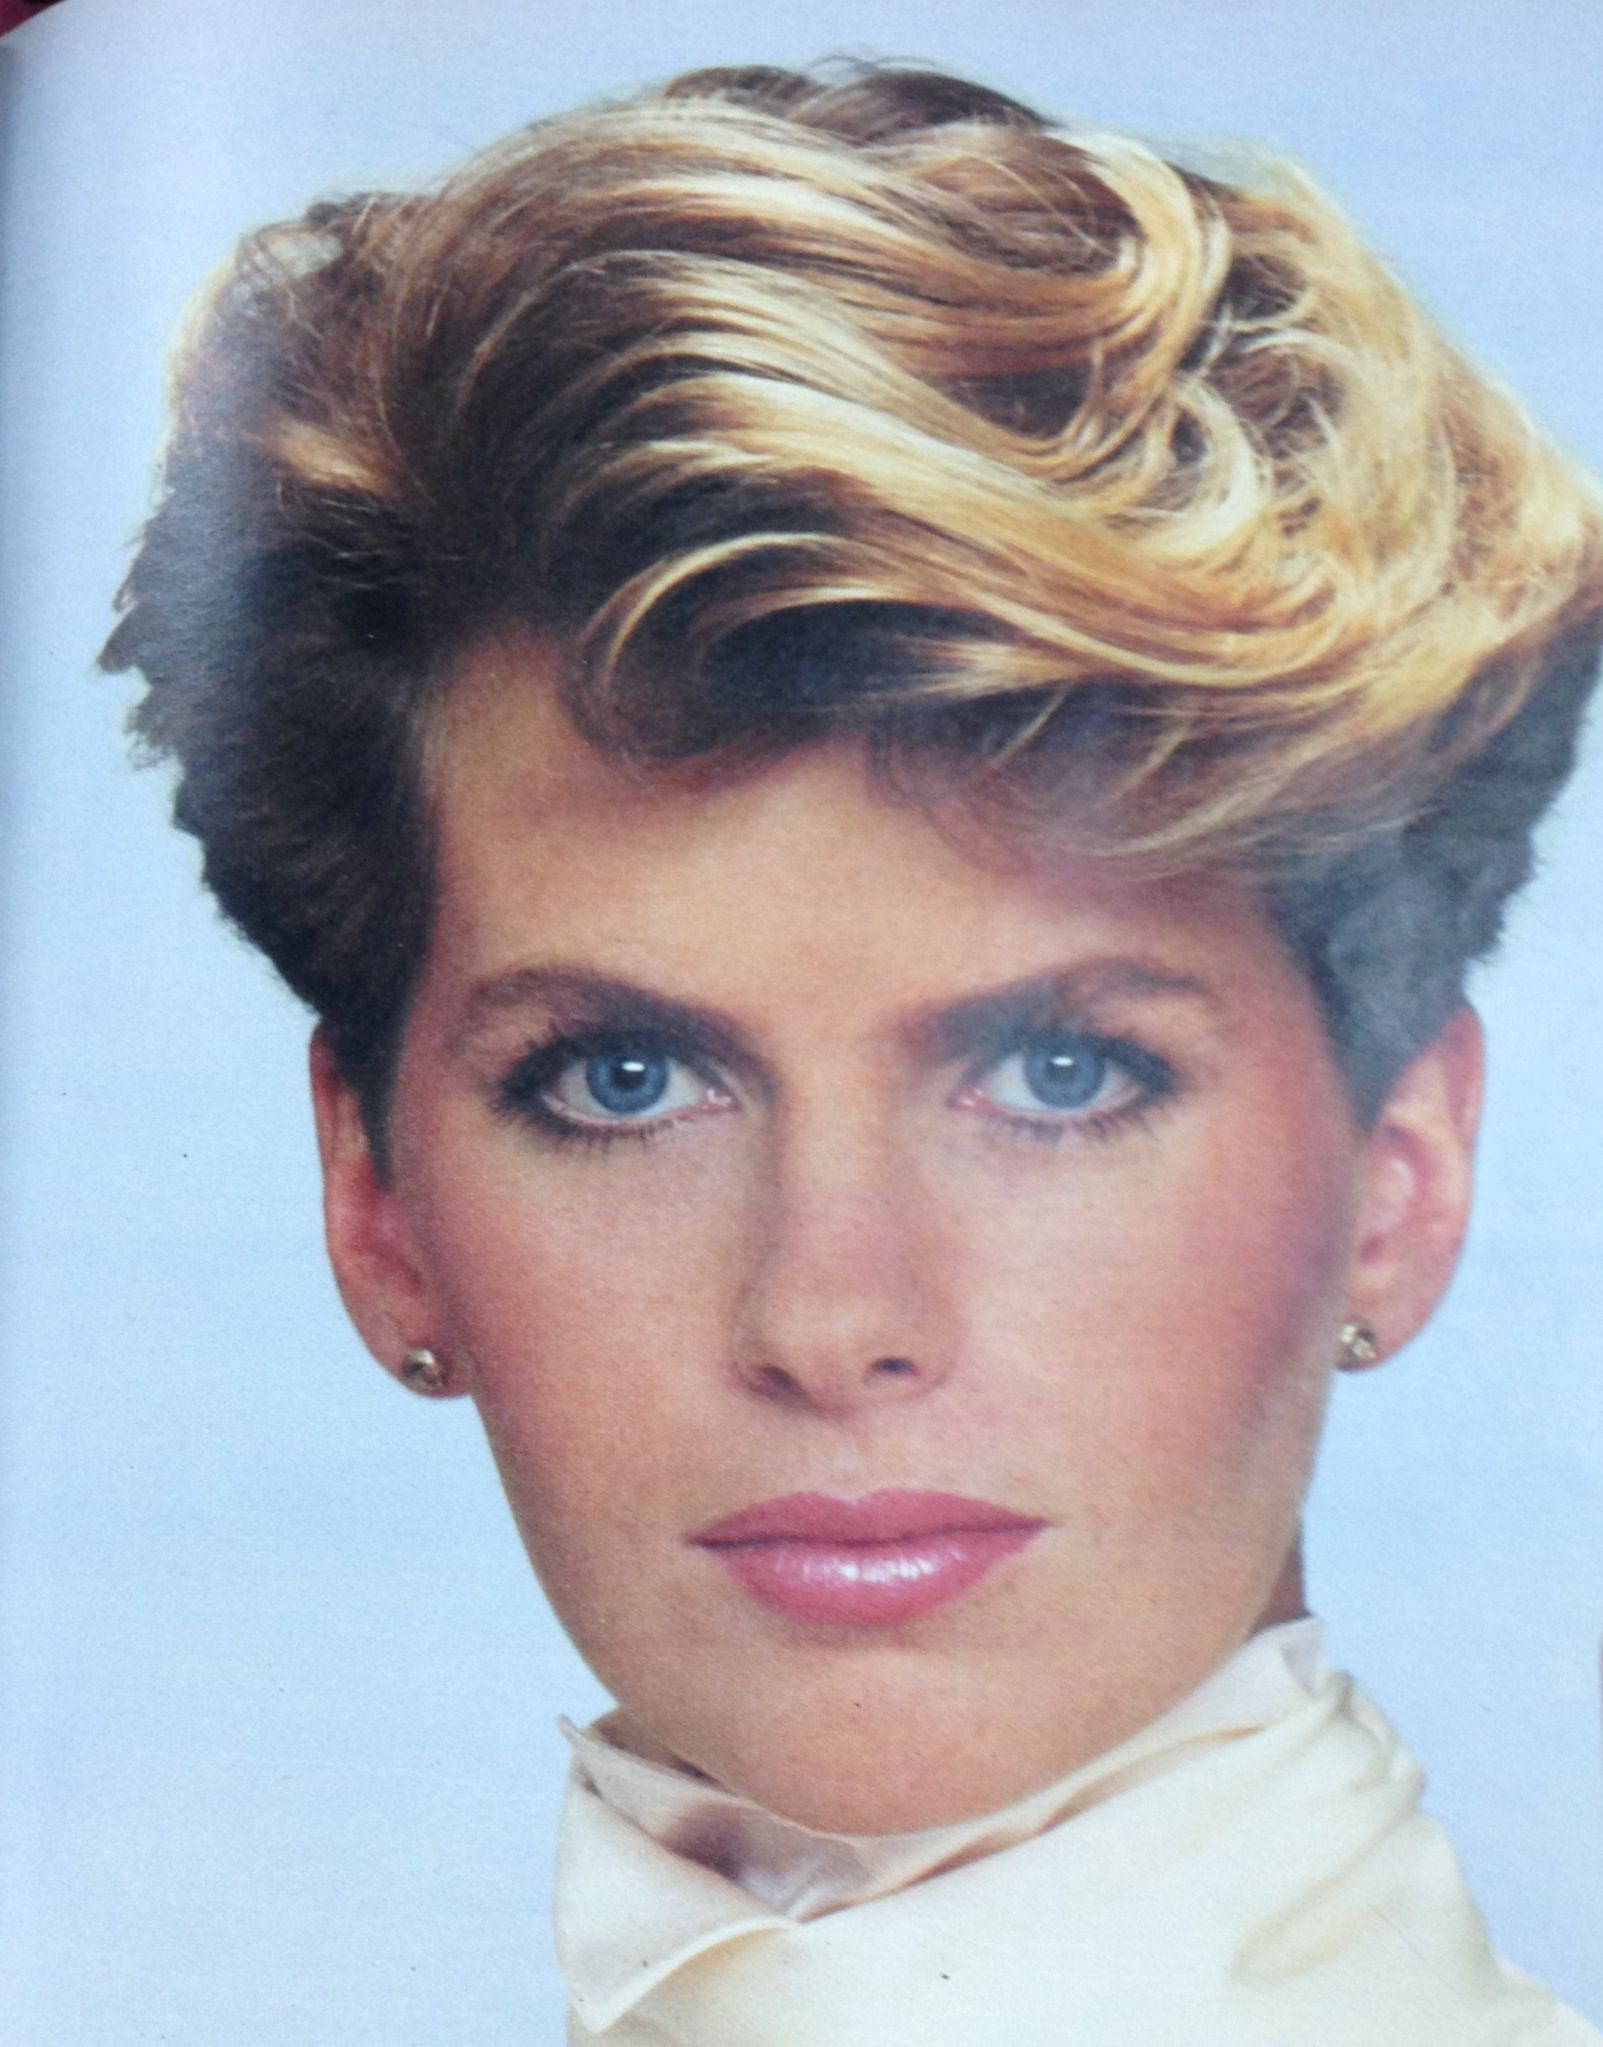 1980's Wavy, short hairstyle.